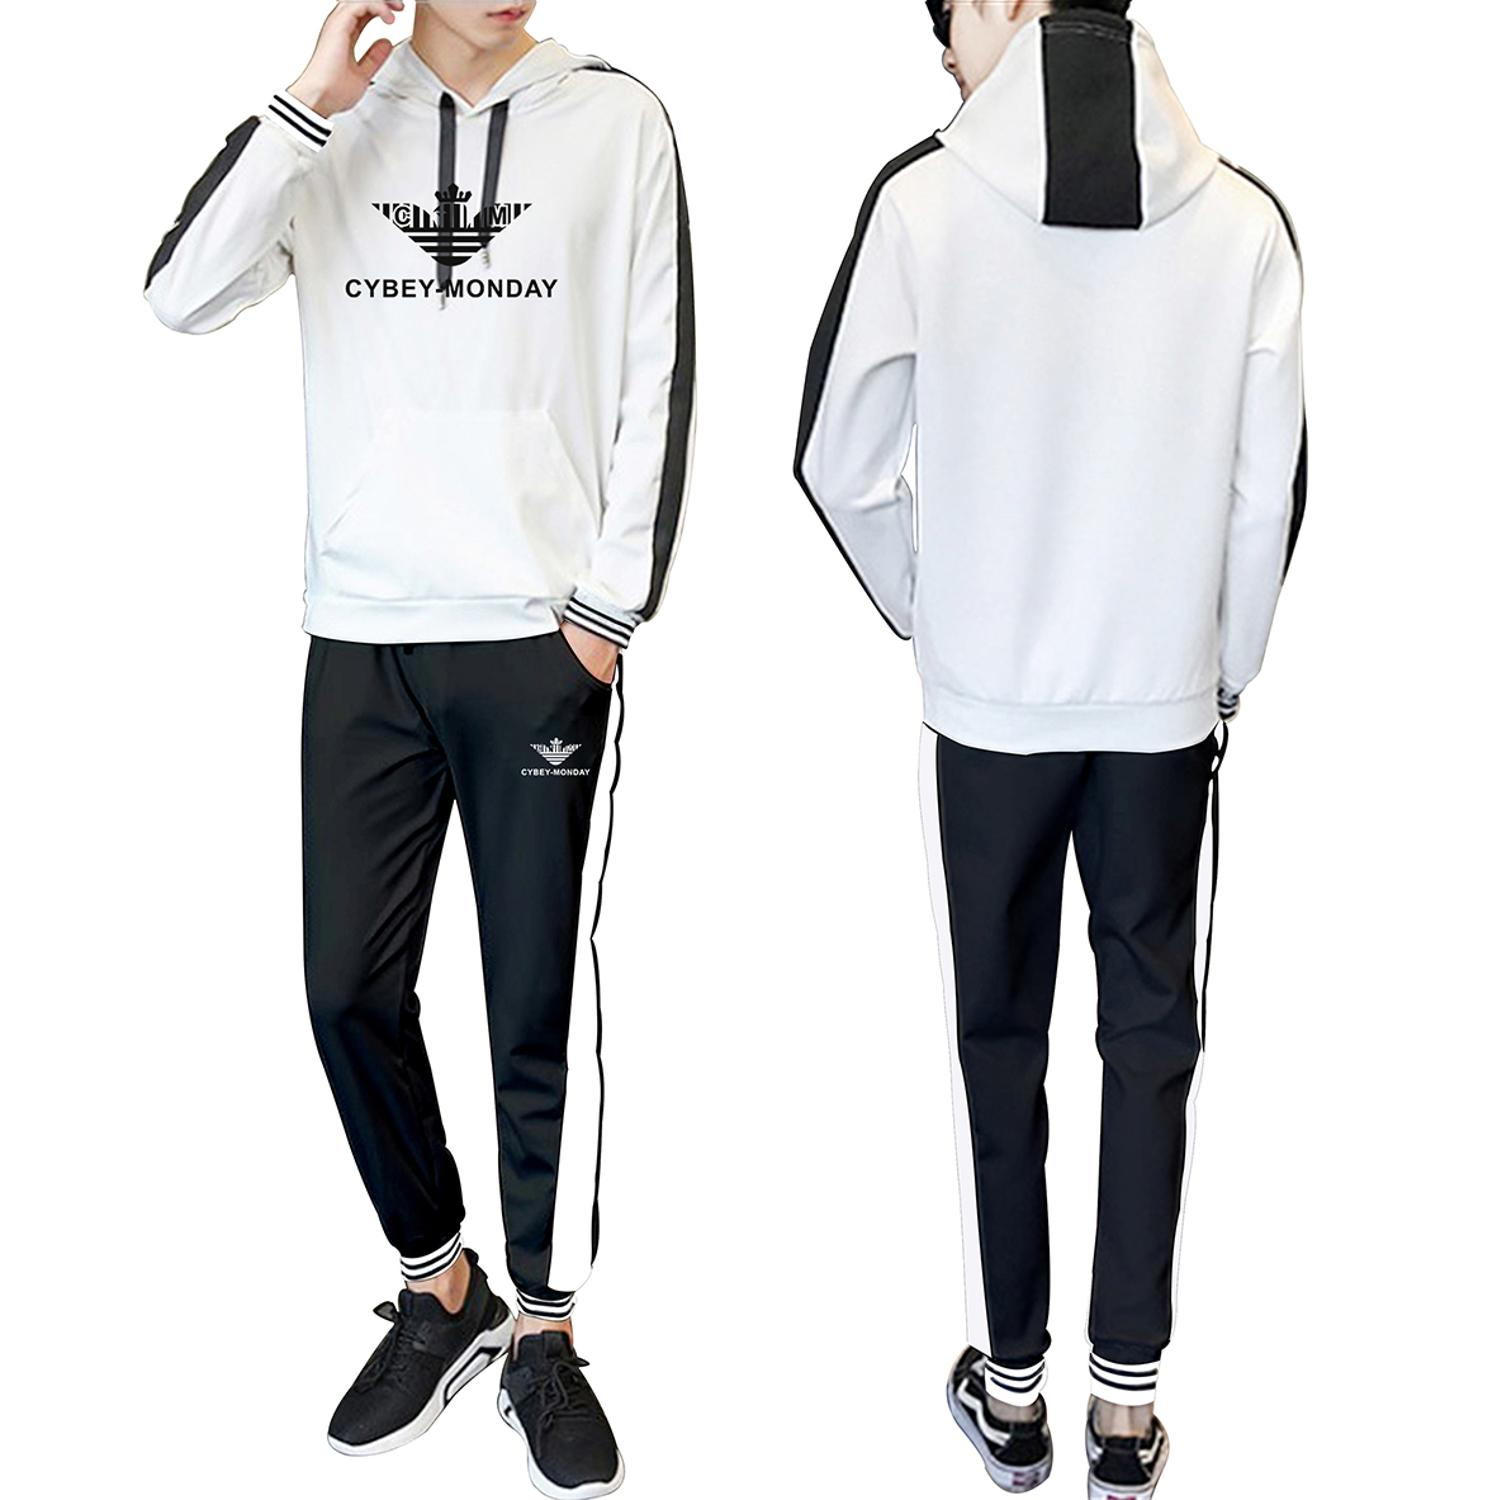 Sports New Logo 2020 Spring and Autumn New Hooded Stitching Fashion Casual Suit Fashion Men's and Women's Sports Casual Suit 4